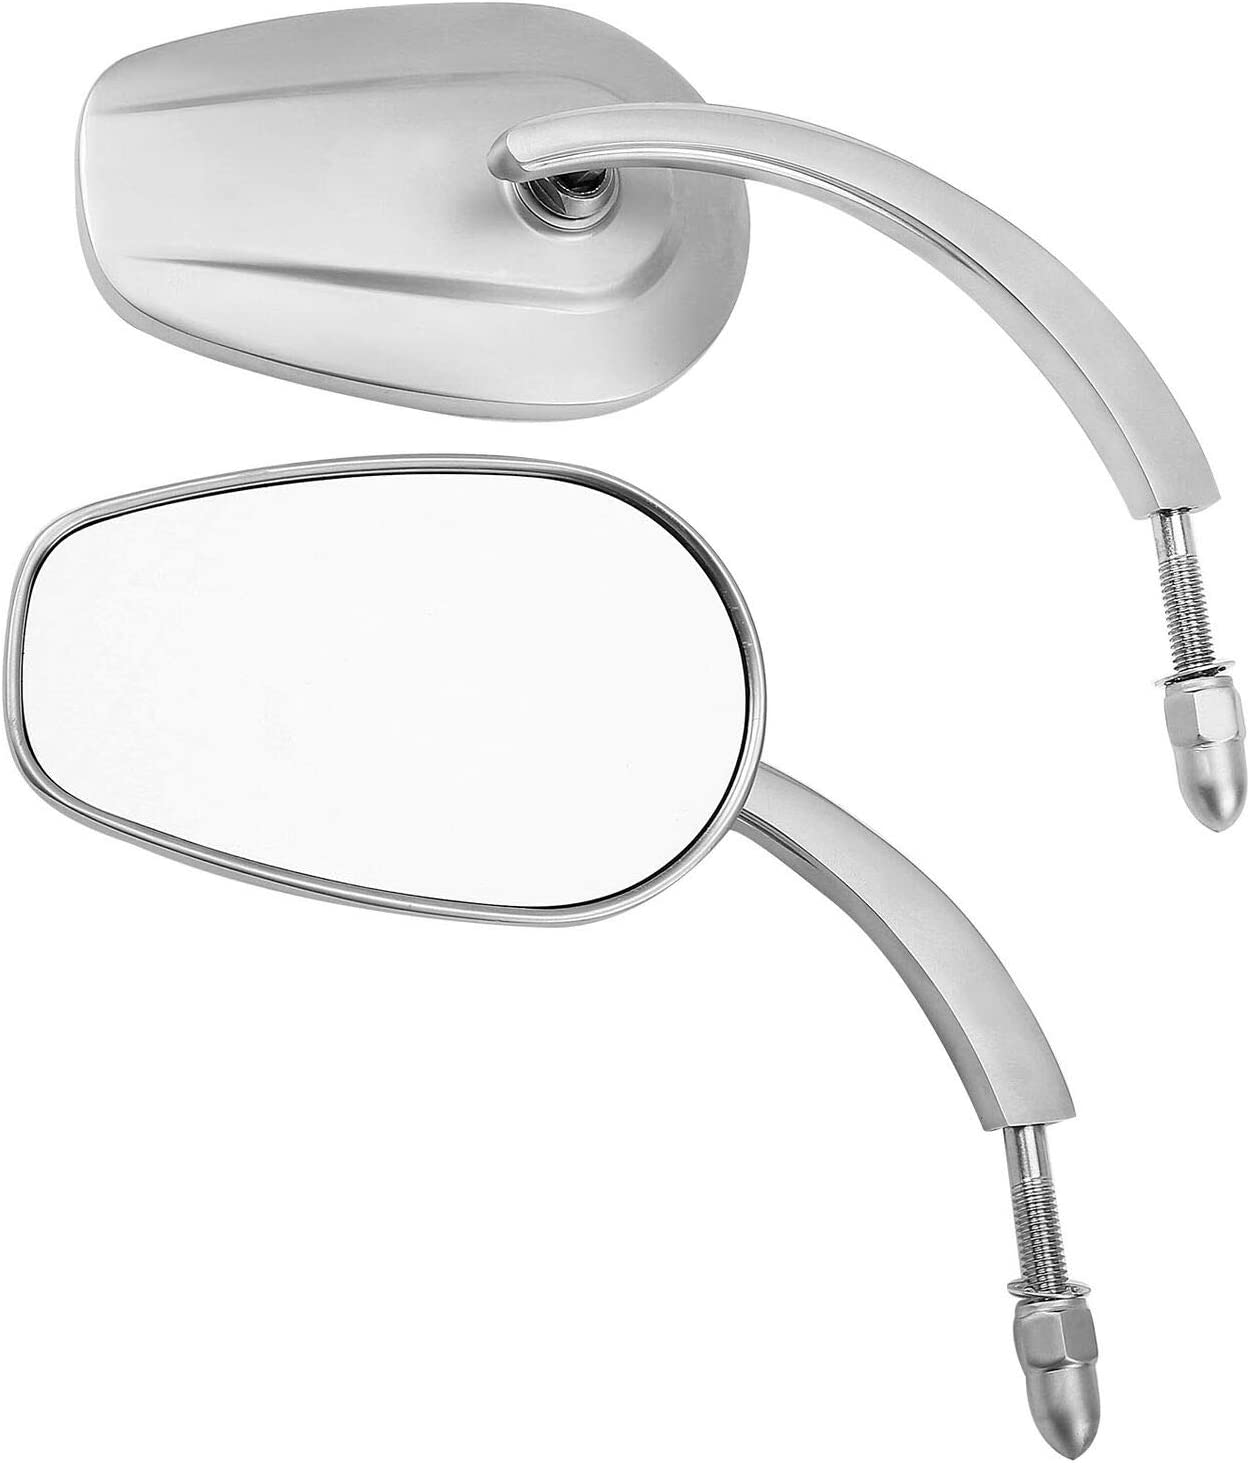 TCMT 8mm Threaded Rearview Side Mirrors Industry No. 1 Swit Fit For Over item handling Dyna Harley